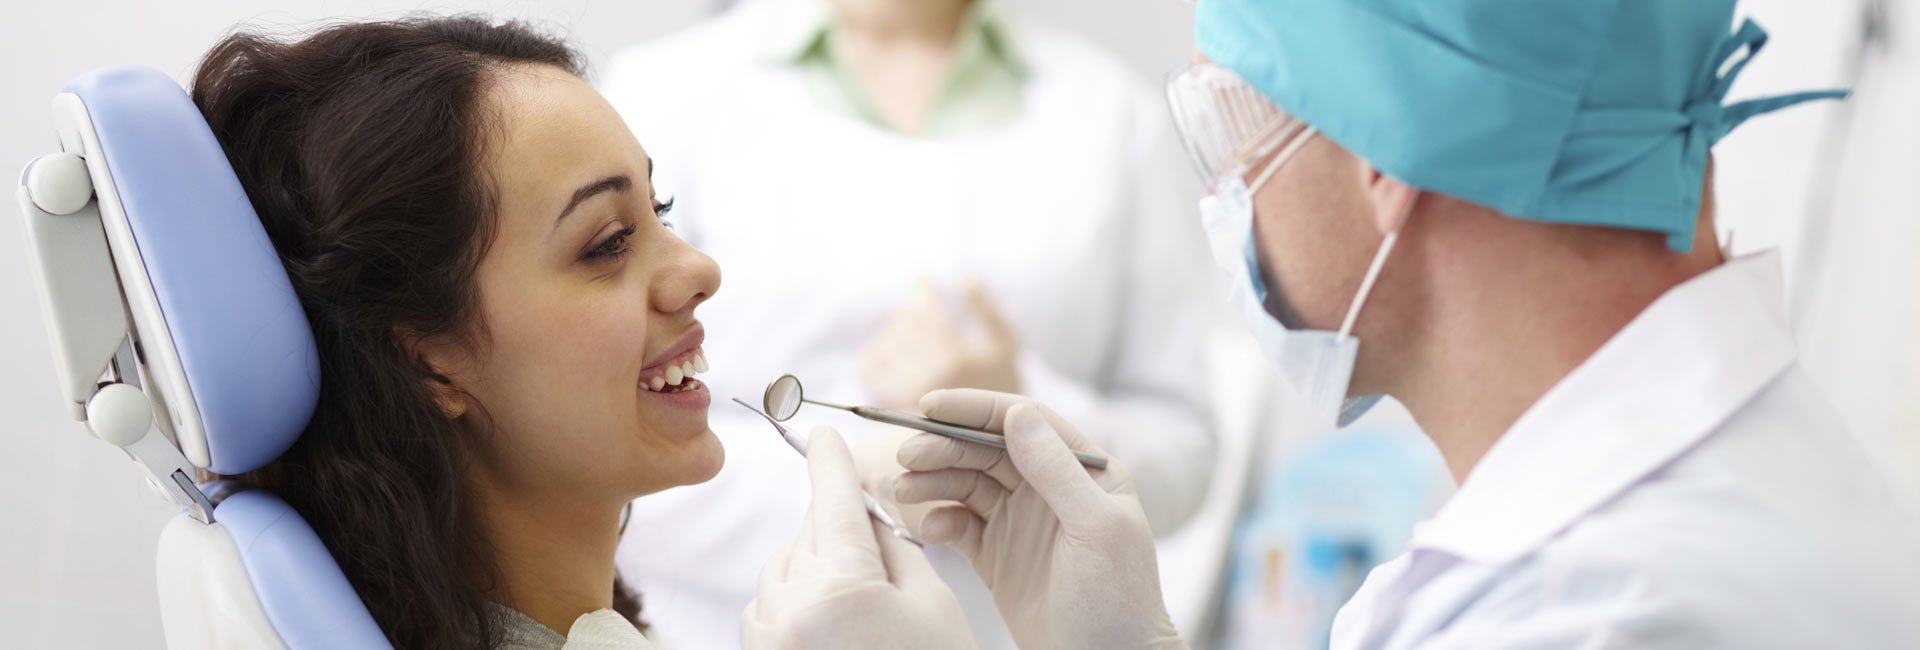 woman-smiling-dentist